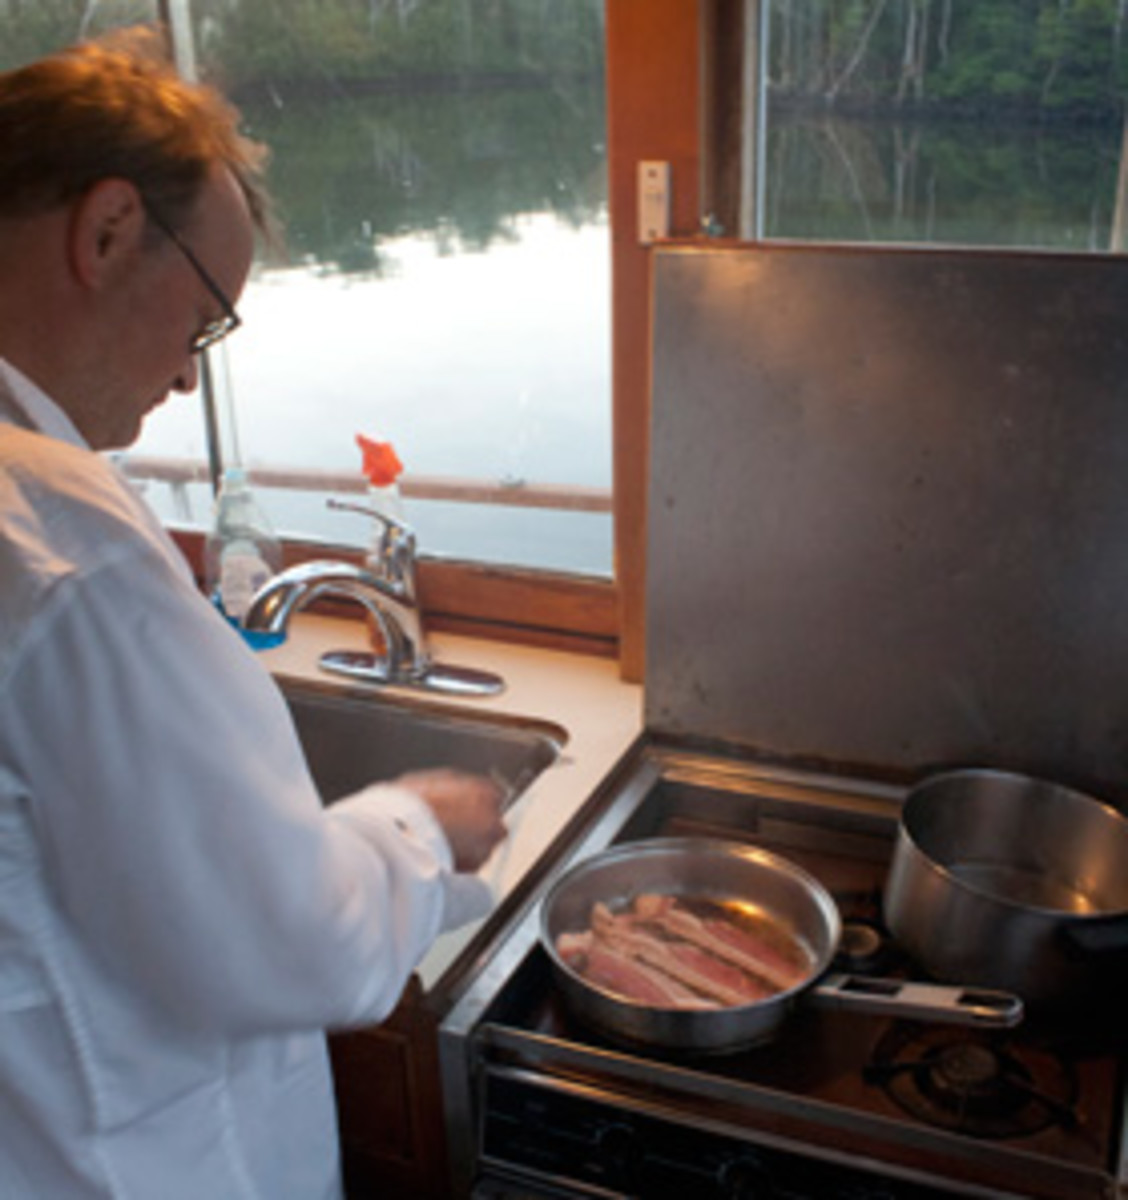 Jason Y. Wood cooking bacon